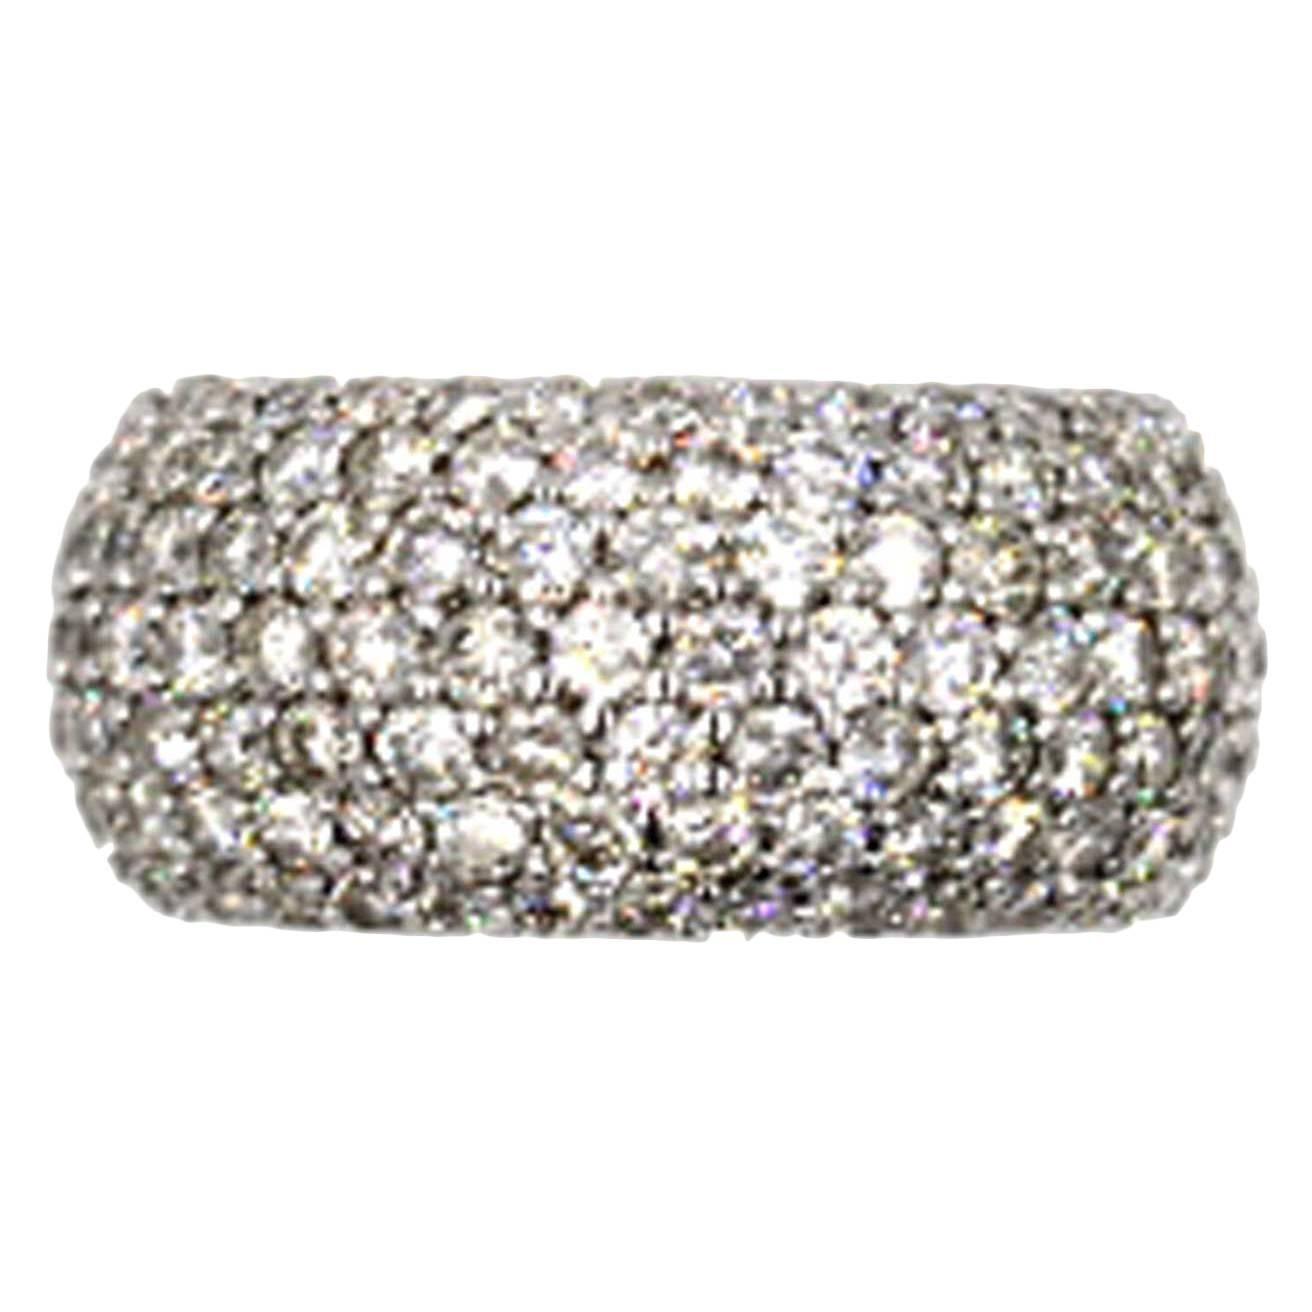 Five-Carat Pave Diamond Eternity Band   From a unique collection of vintage wedding rings at https://www.1stdibs.com/jewelry/rings/wedding-rings/